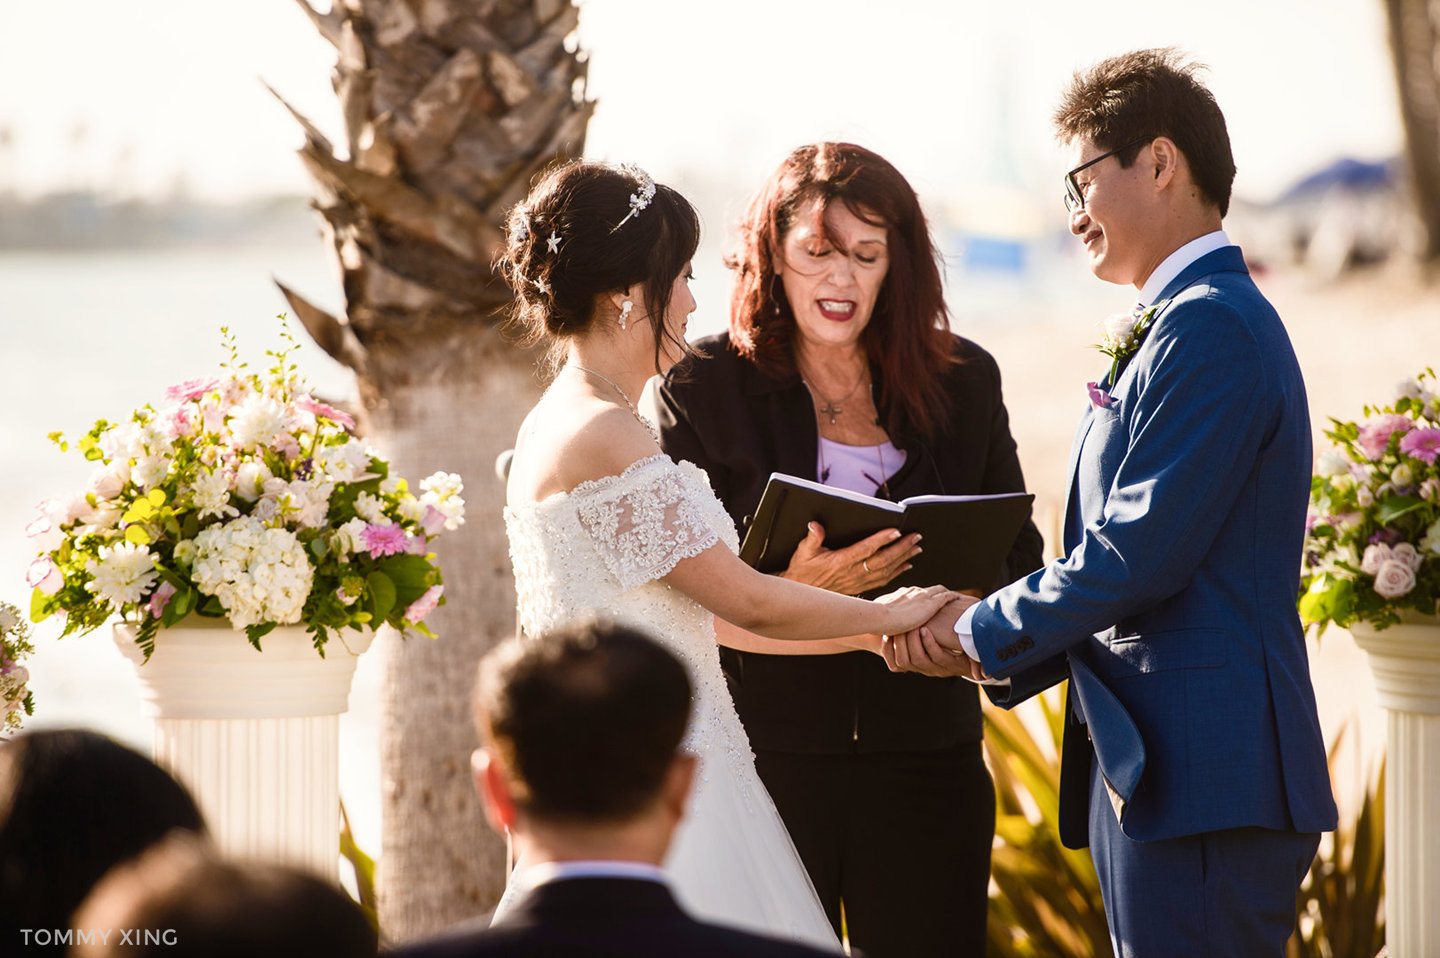 Paradise Point Resort Wedding Xiaolu & Bin San Diego 圣地亚哥婚礼摄影跟拍 Tommy Xing Photography 洛杉矶婚礼婚纱照摄影师 150.jpg